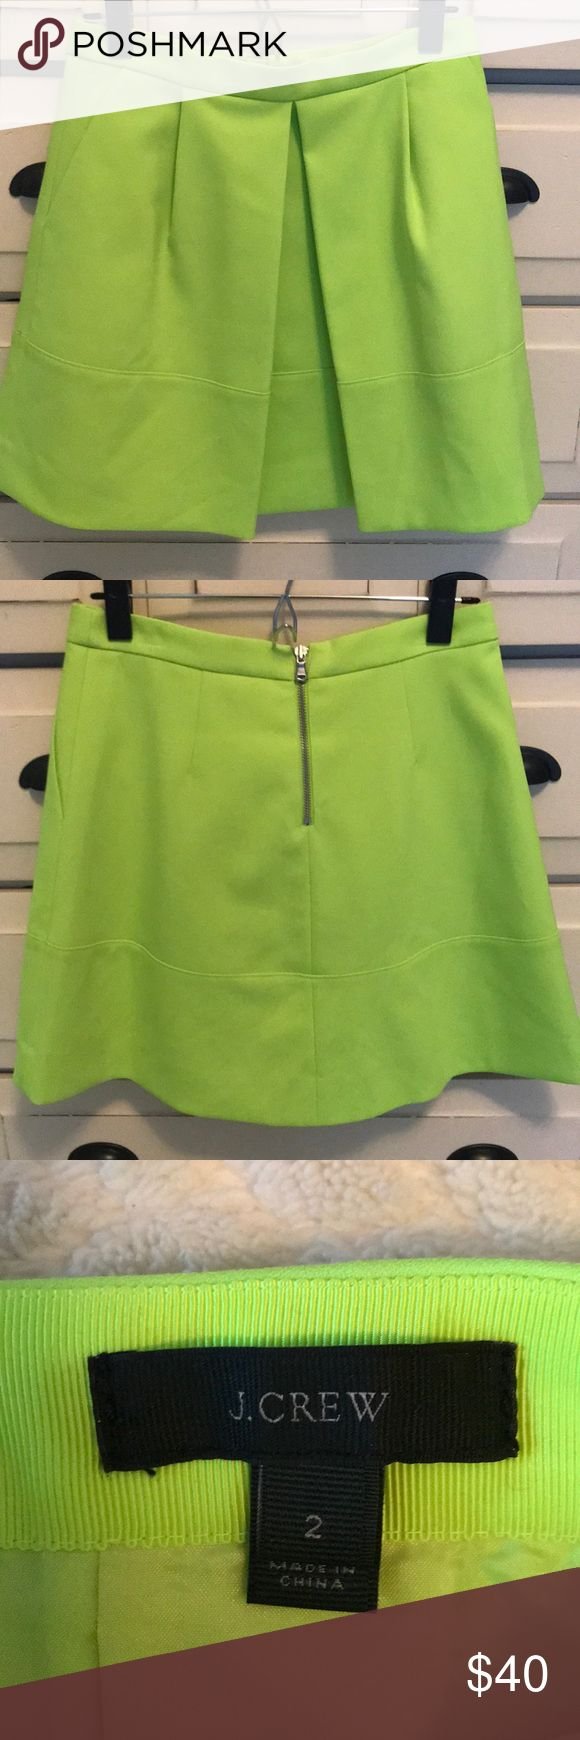 "J. Crew Neon Yellow skirt Flared neon yellow skirt from J.Crew. Length: 18"" only worn once - like new condition! J. Crew Skirts Mini"